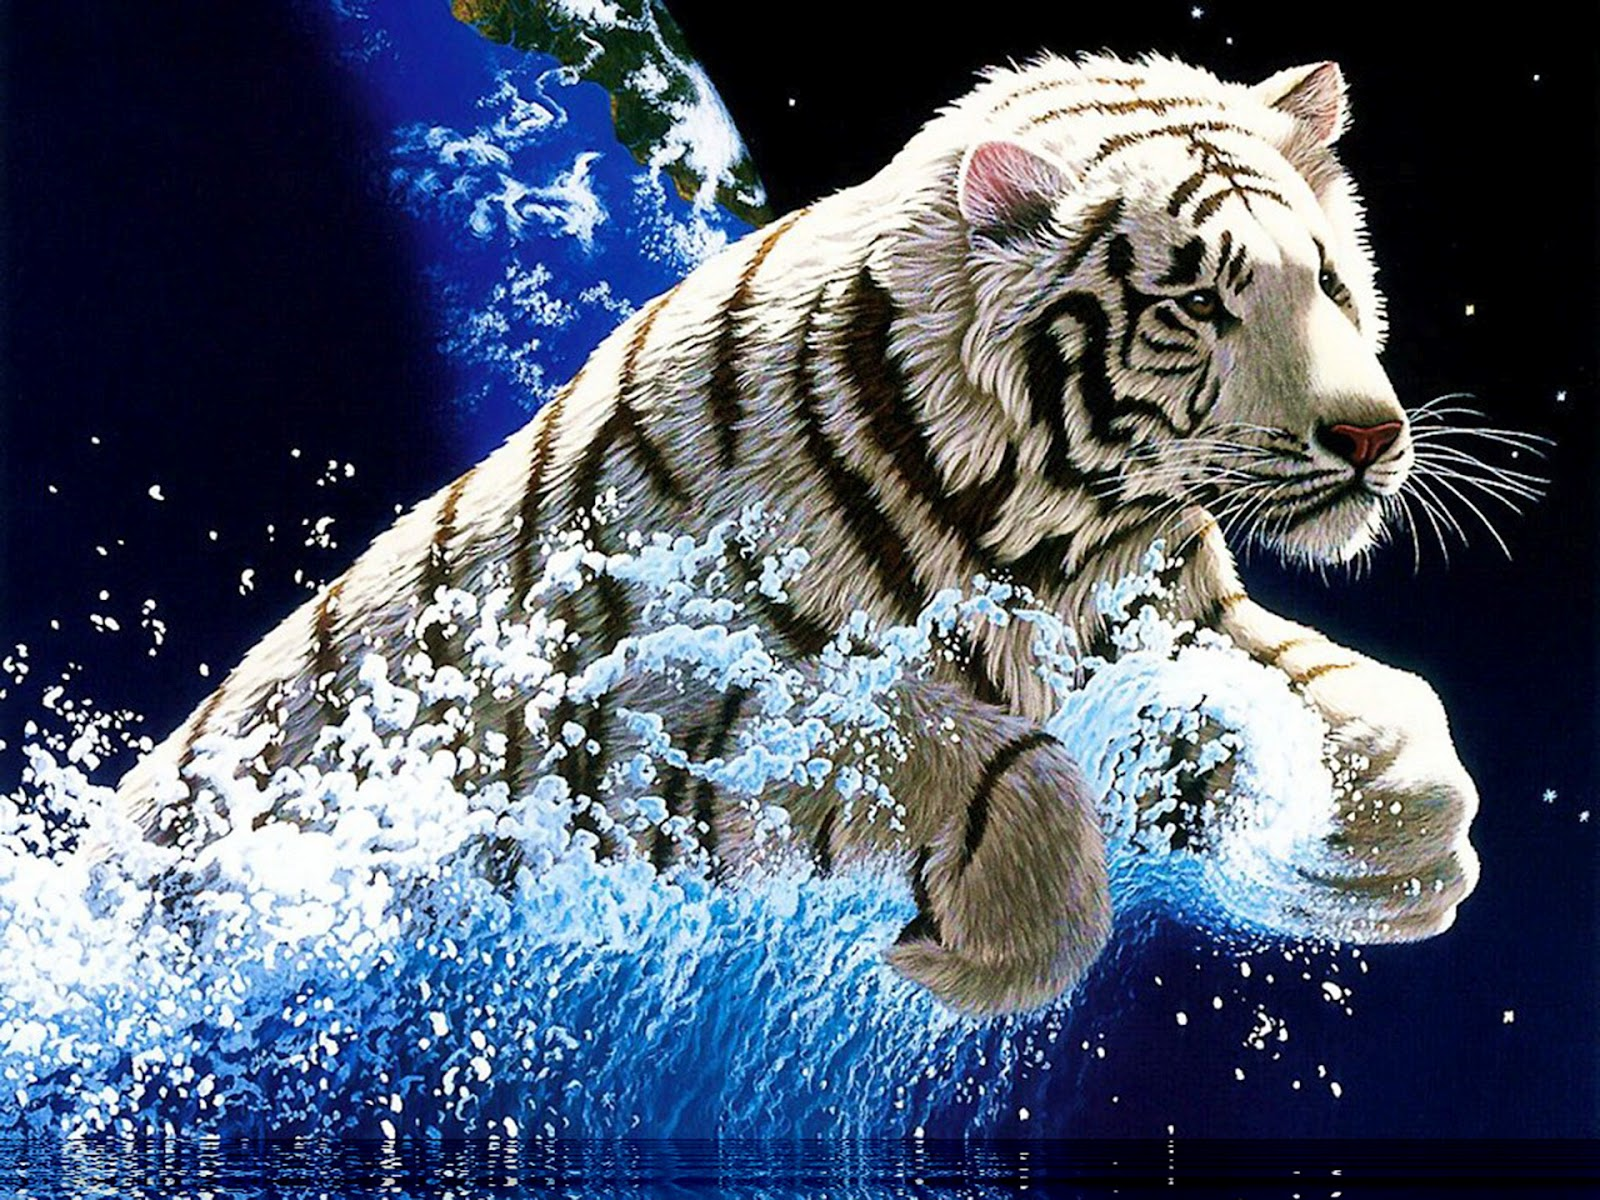 Cool Wallpapers Blog: Amazing White Tiger Wallpapers